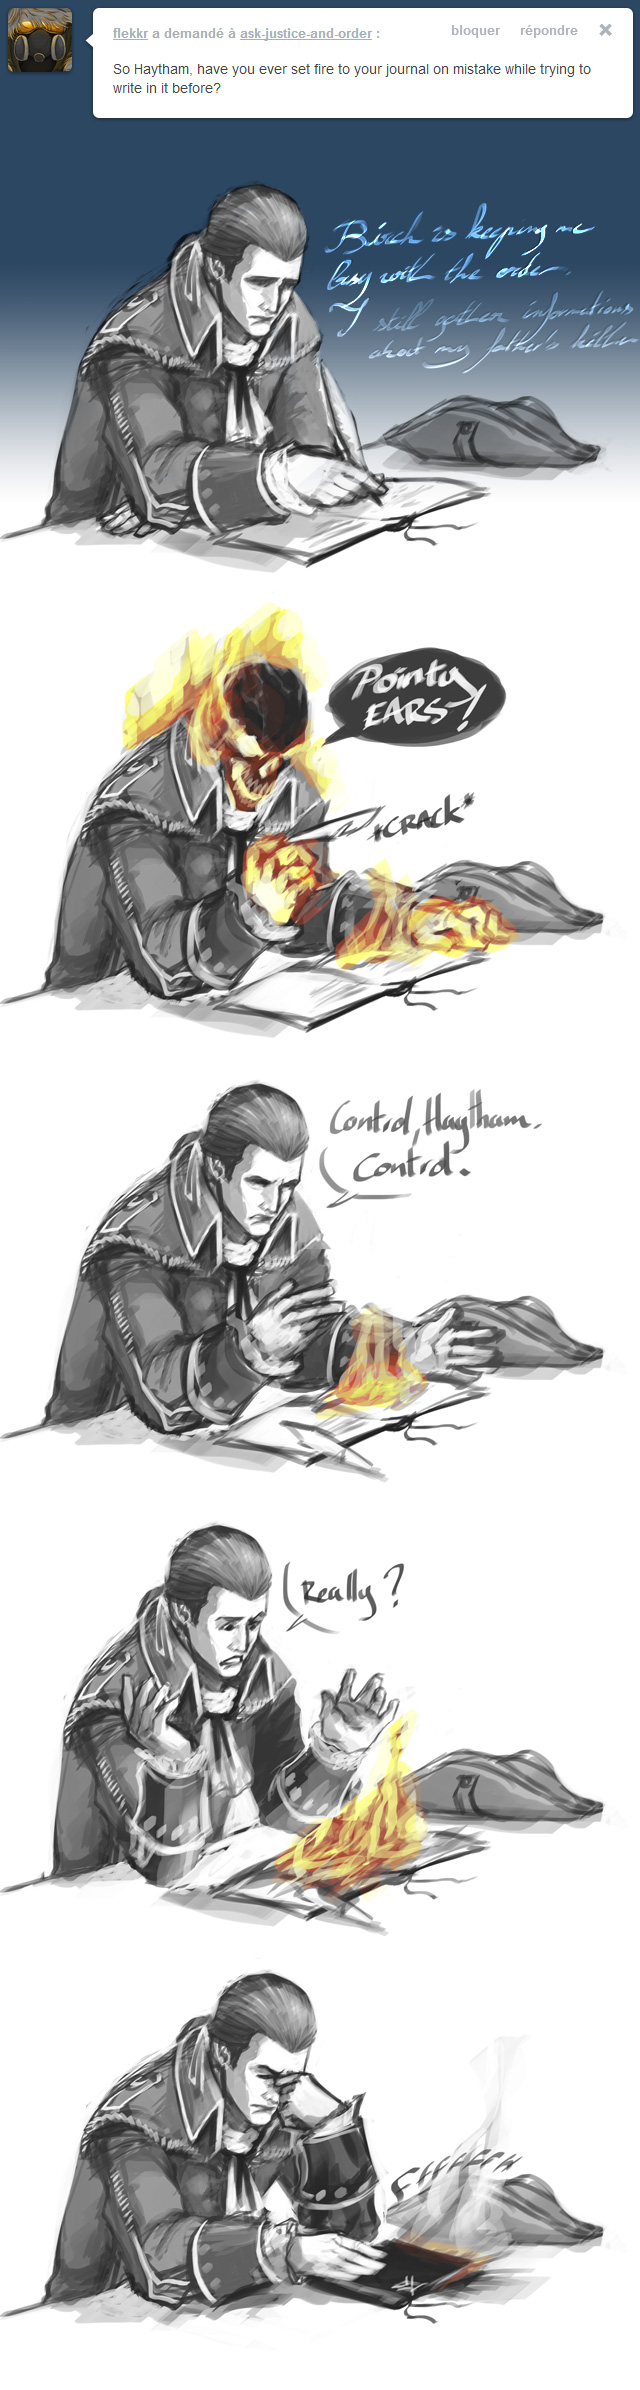 Connor Kenway Relationship Haytham Kenway And Connor